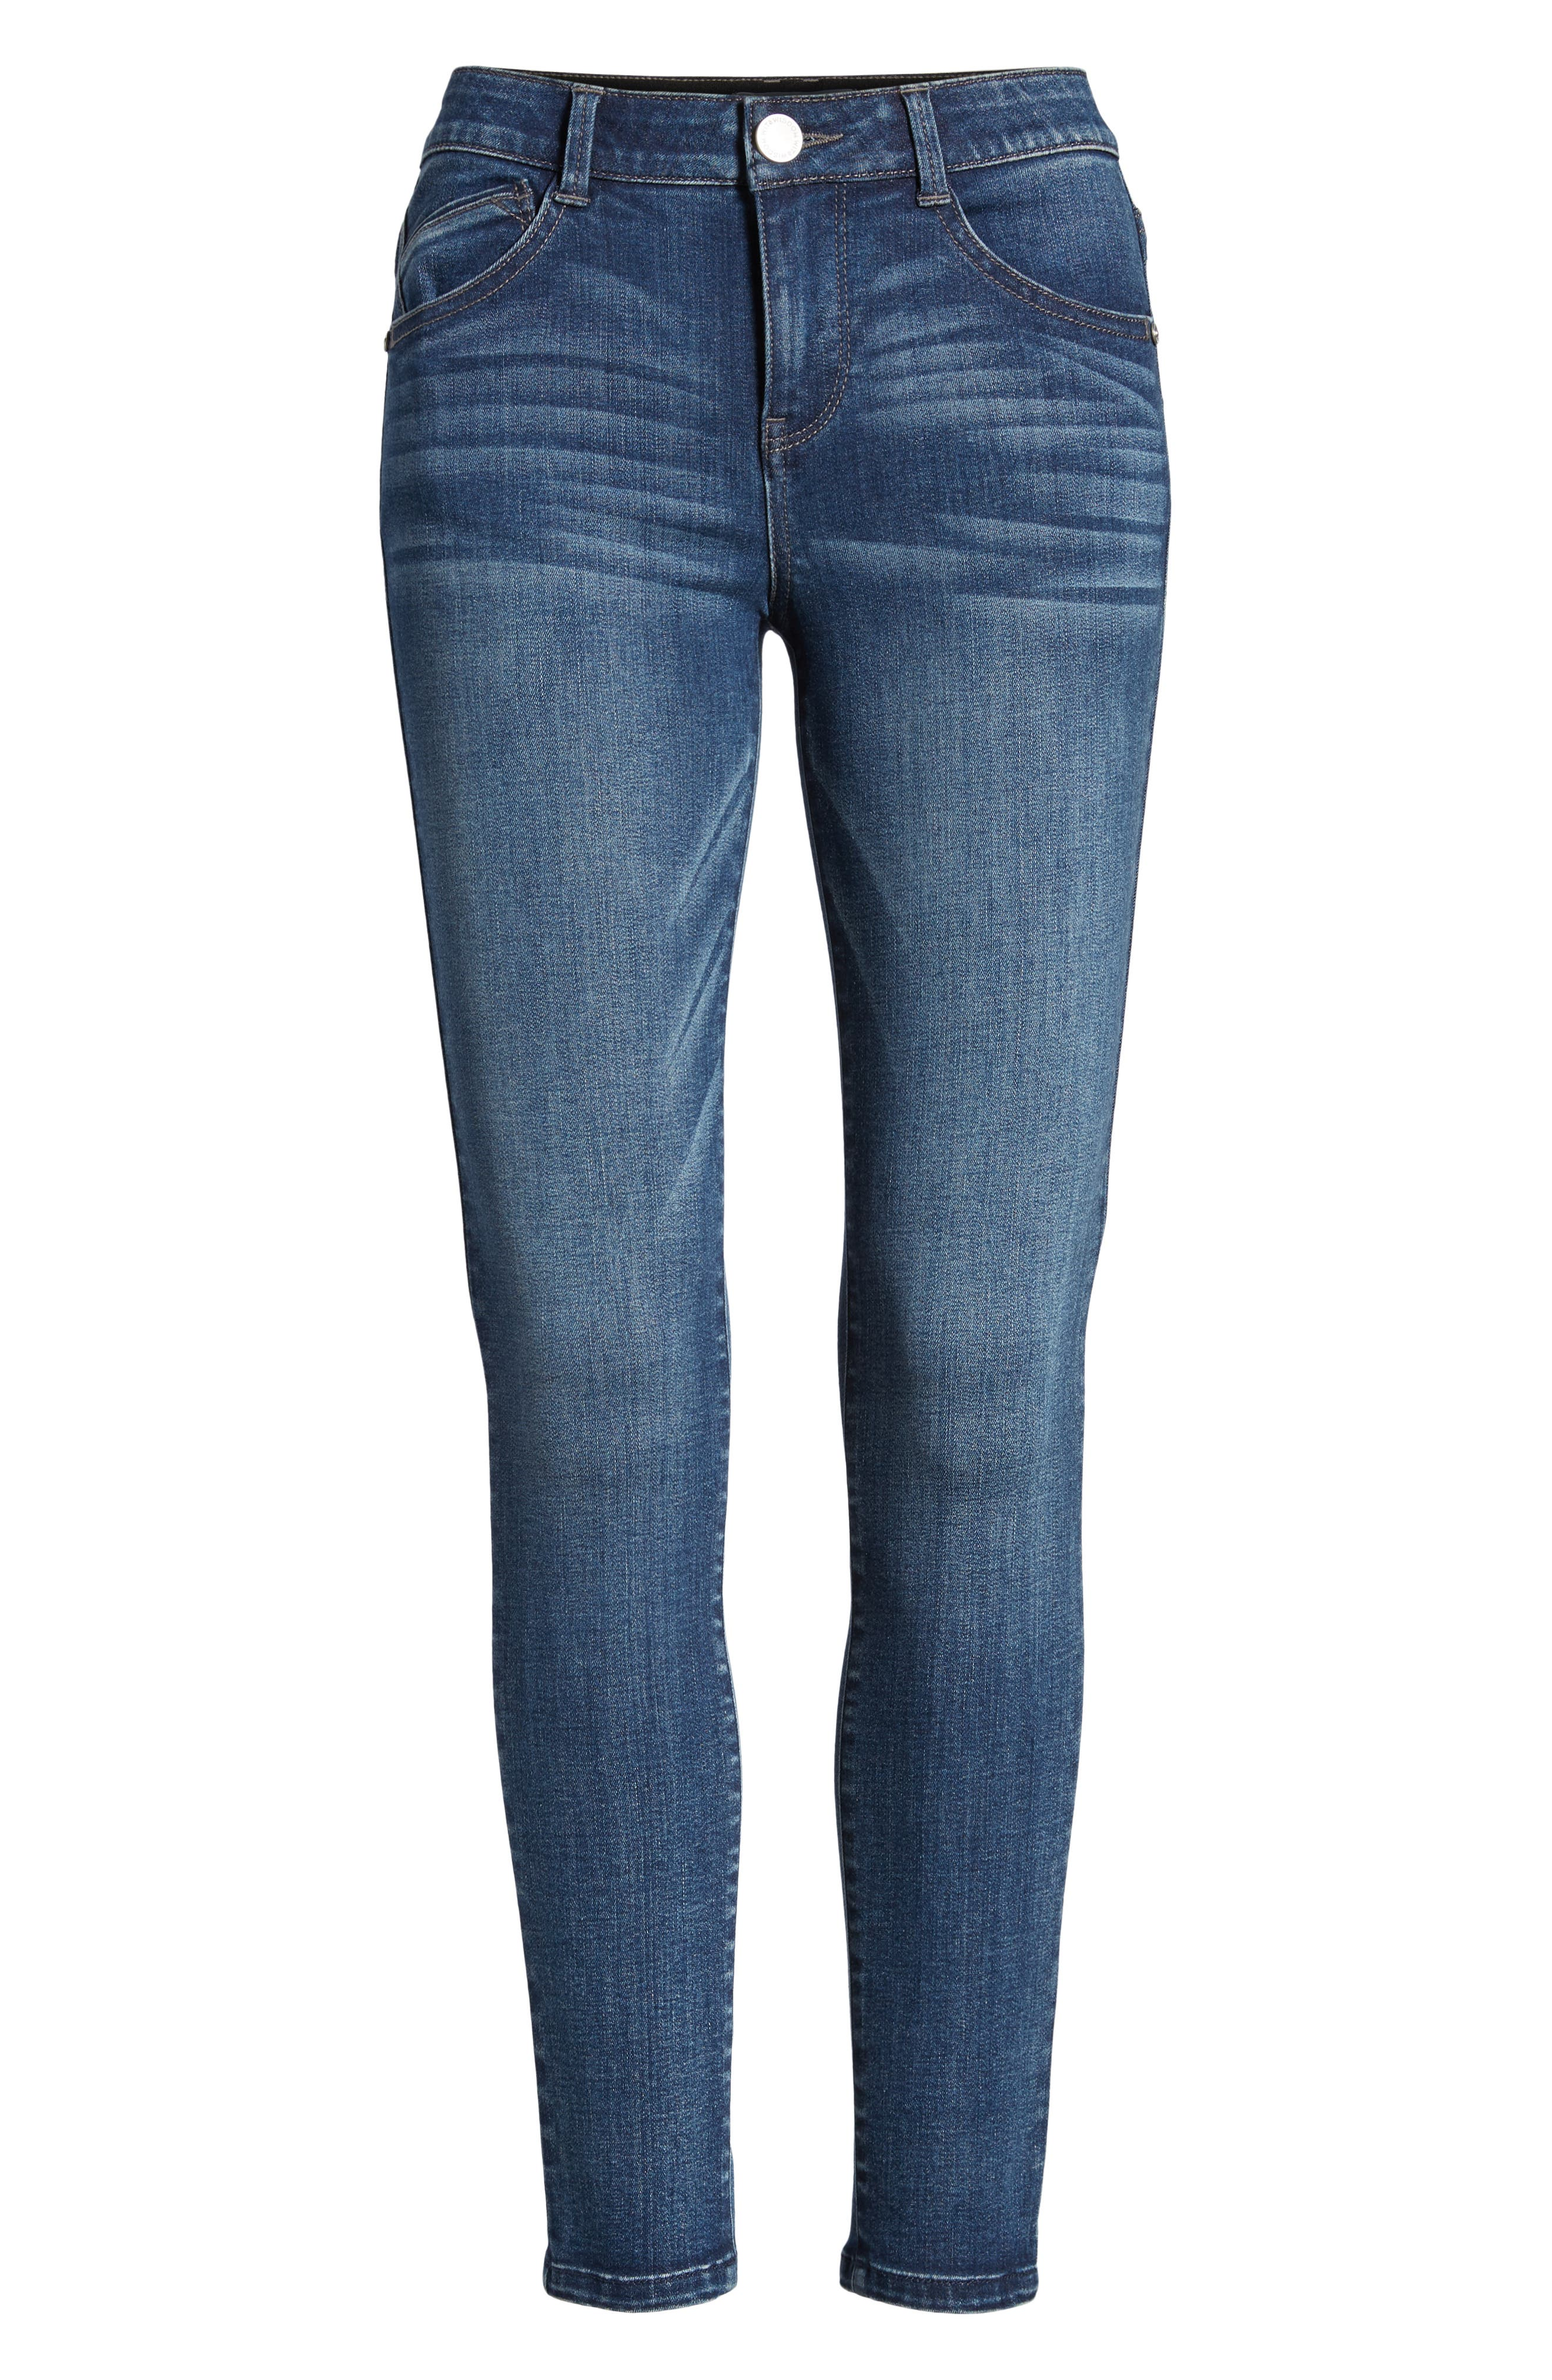 Ab-solution Ankle Skinny Jeans,                             Alternate thumbnail 7, color,                             420